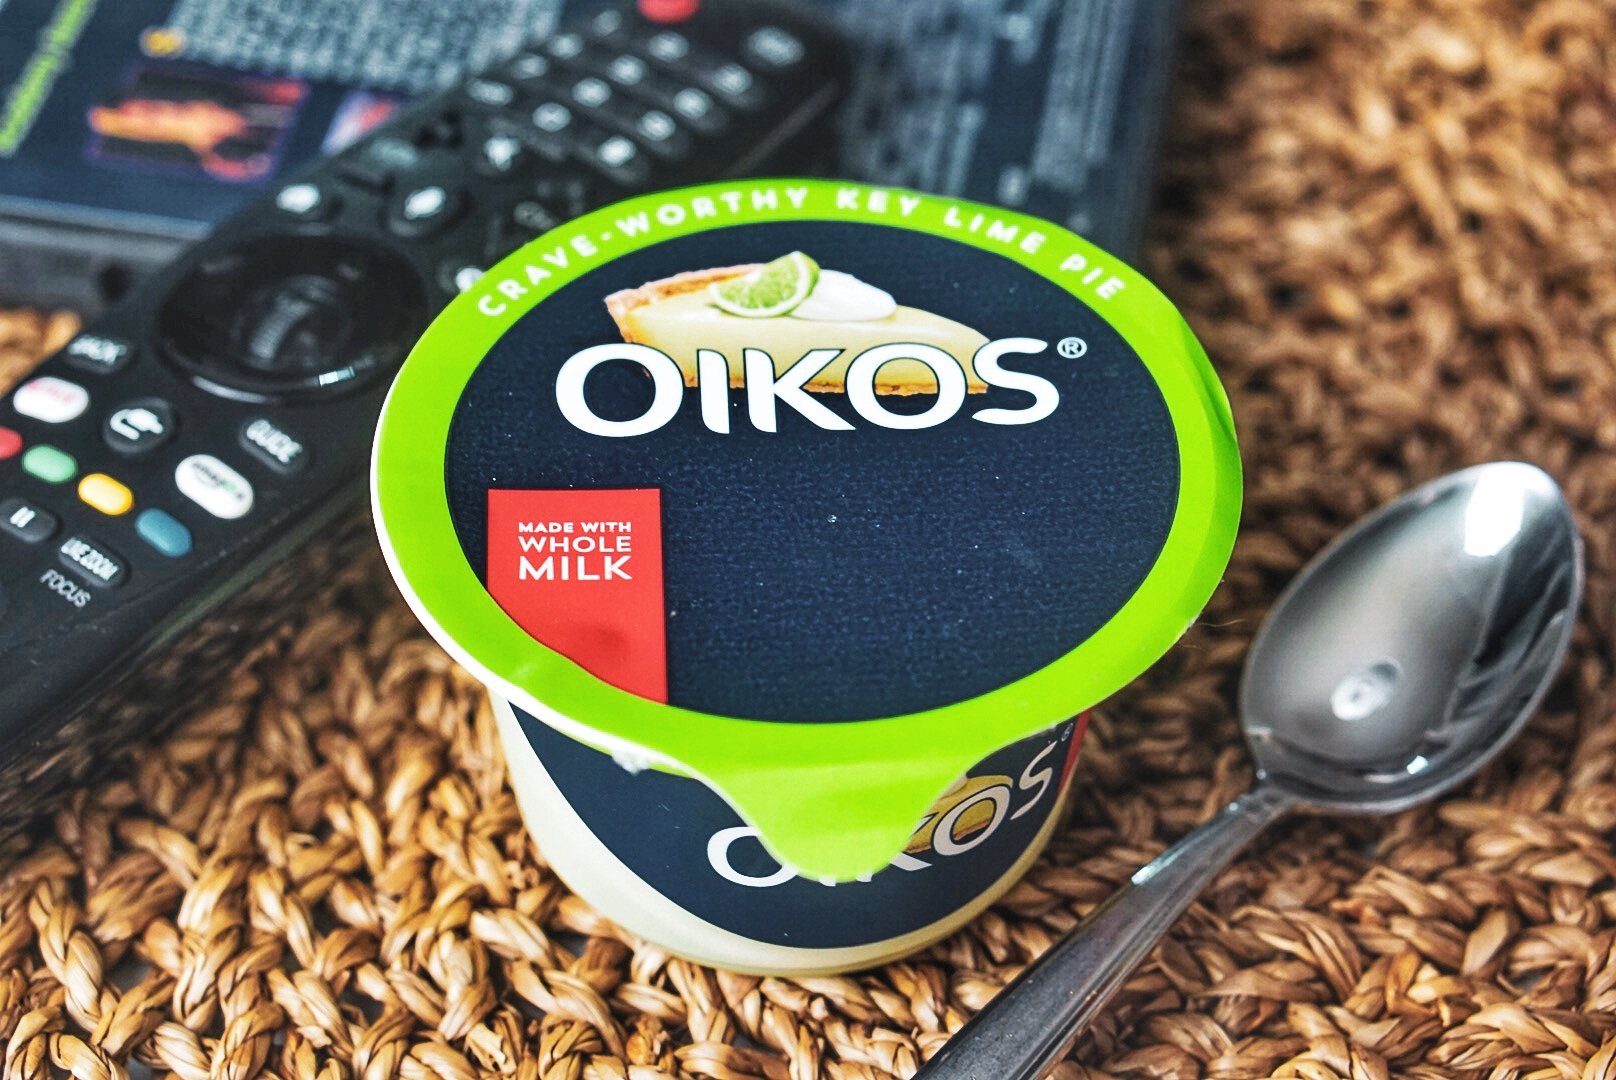 Oikos Whole Milk Greek Yogurt